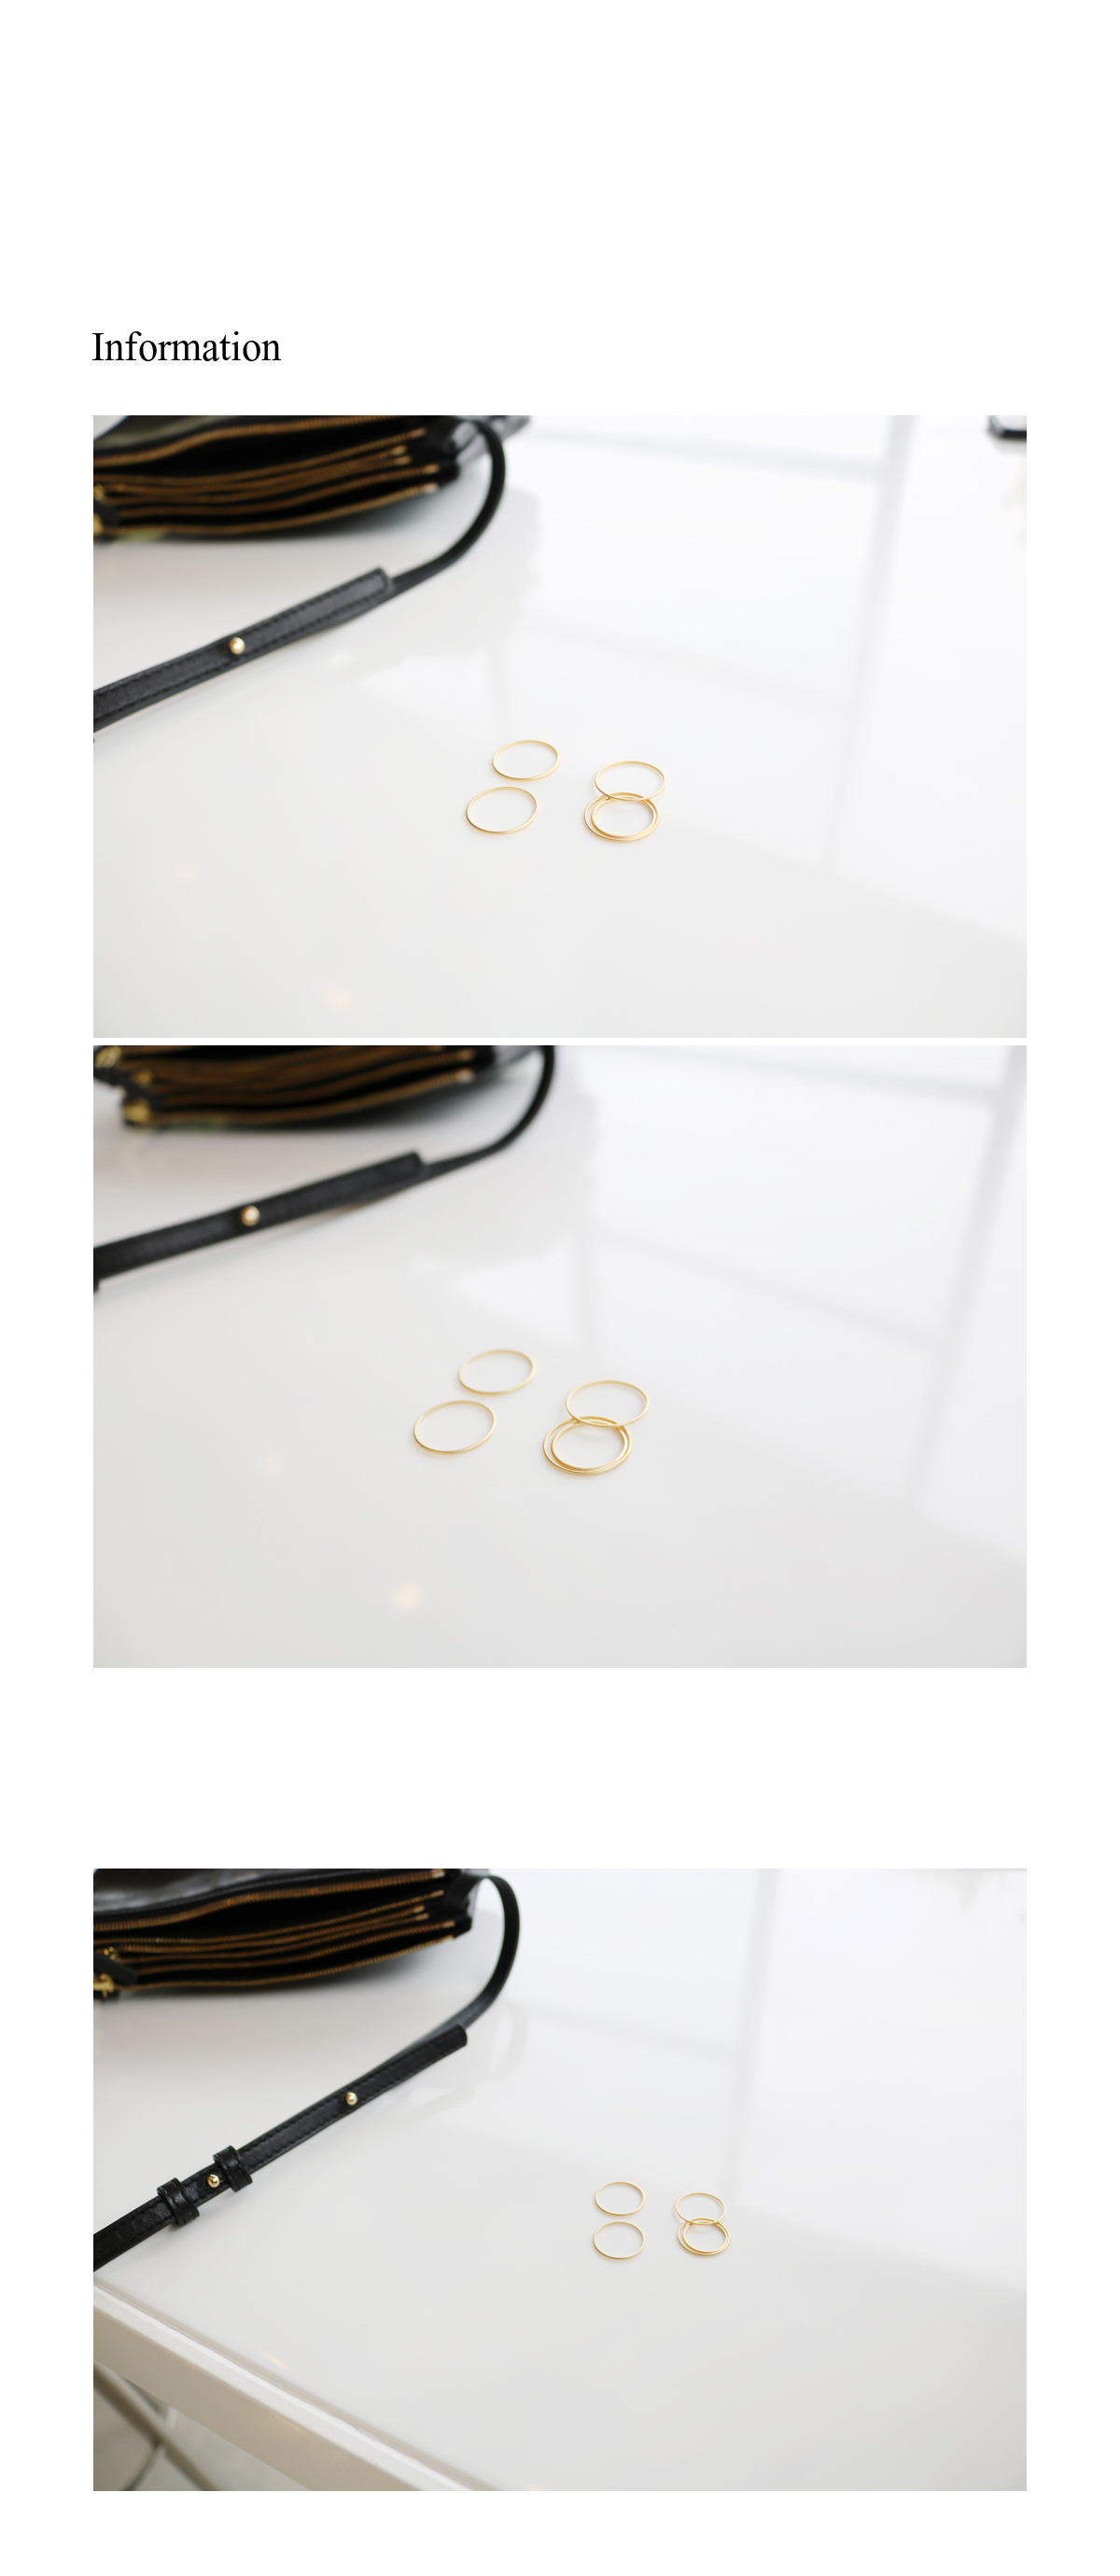 Six ring ; one color